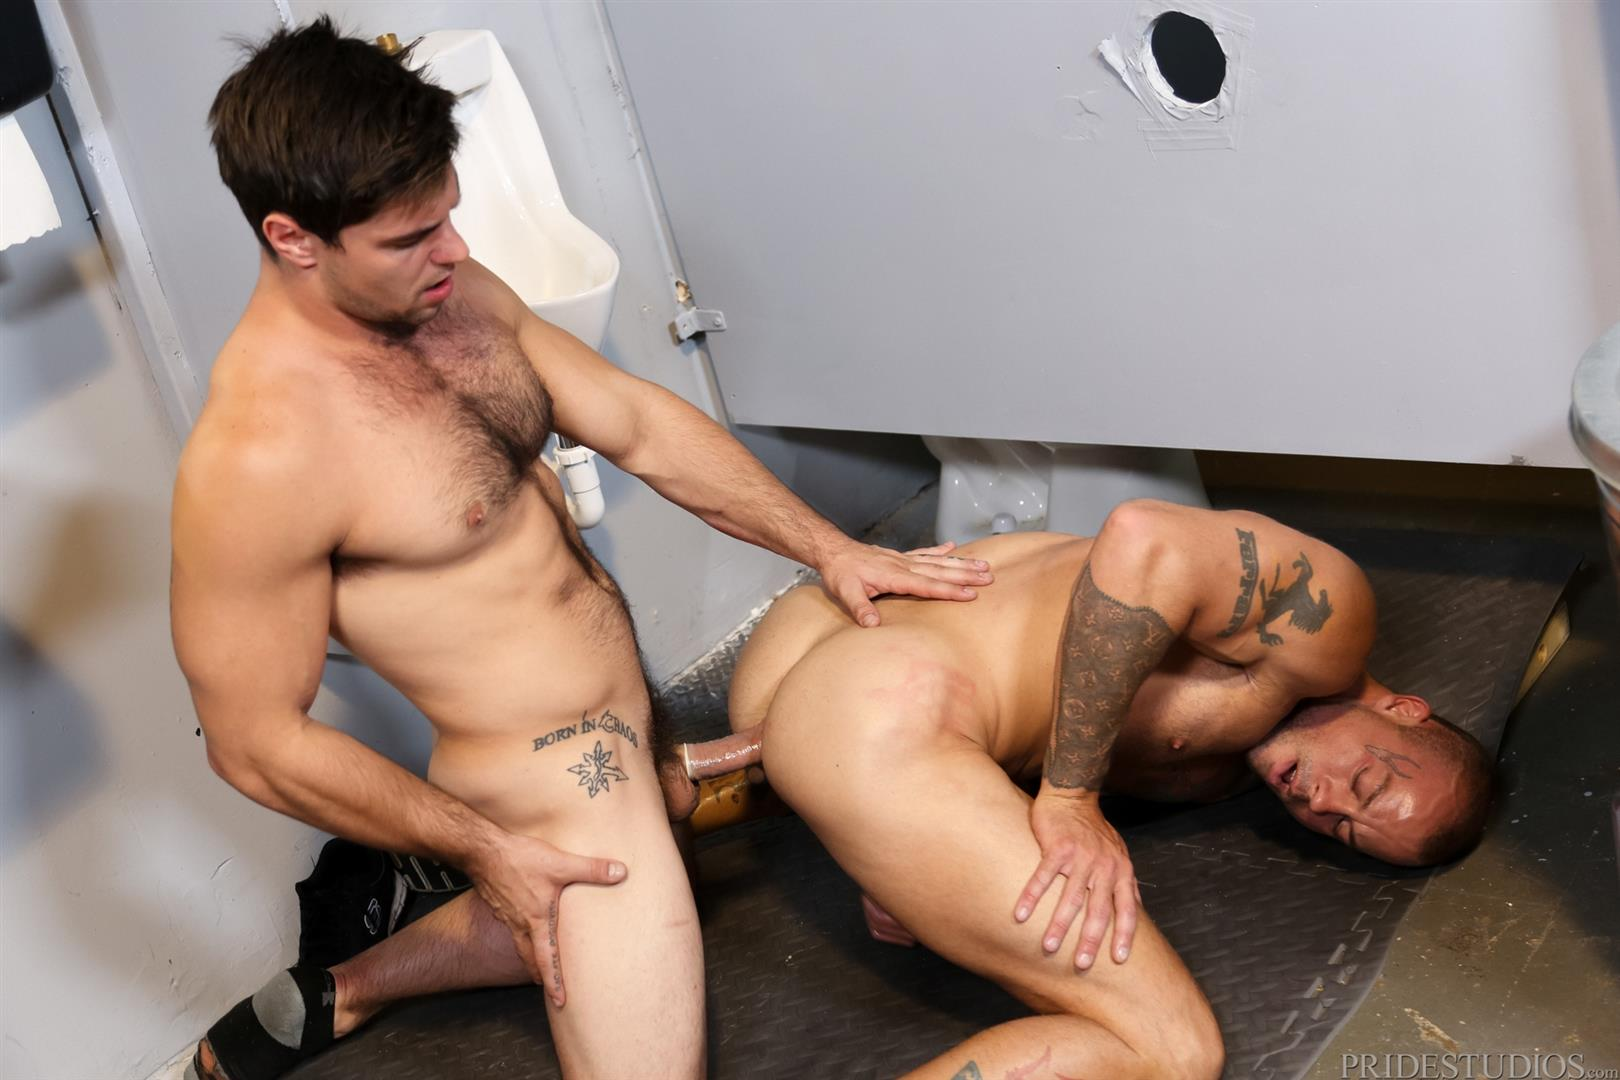 Extra Big Dicks Sean Duran Fucking Through A Glory Hole Amateur Gay Porn 13 Getting Fucked By A Big Fat Cock Through a Glory Hole